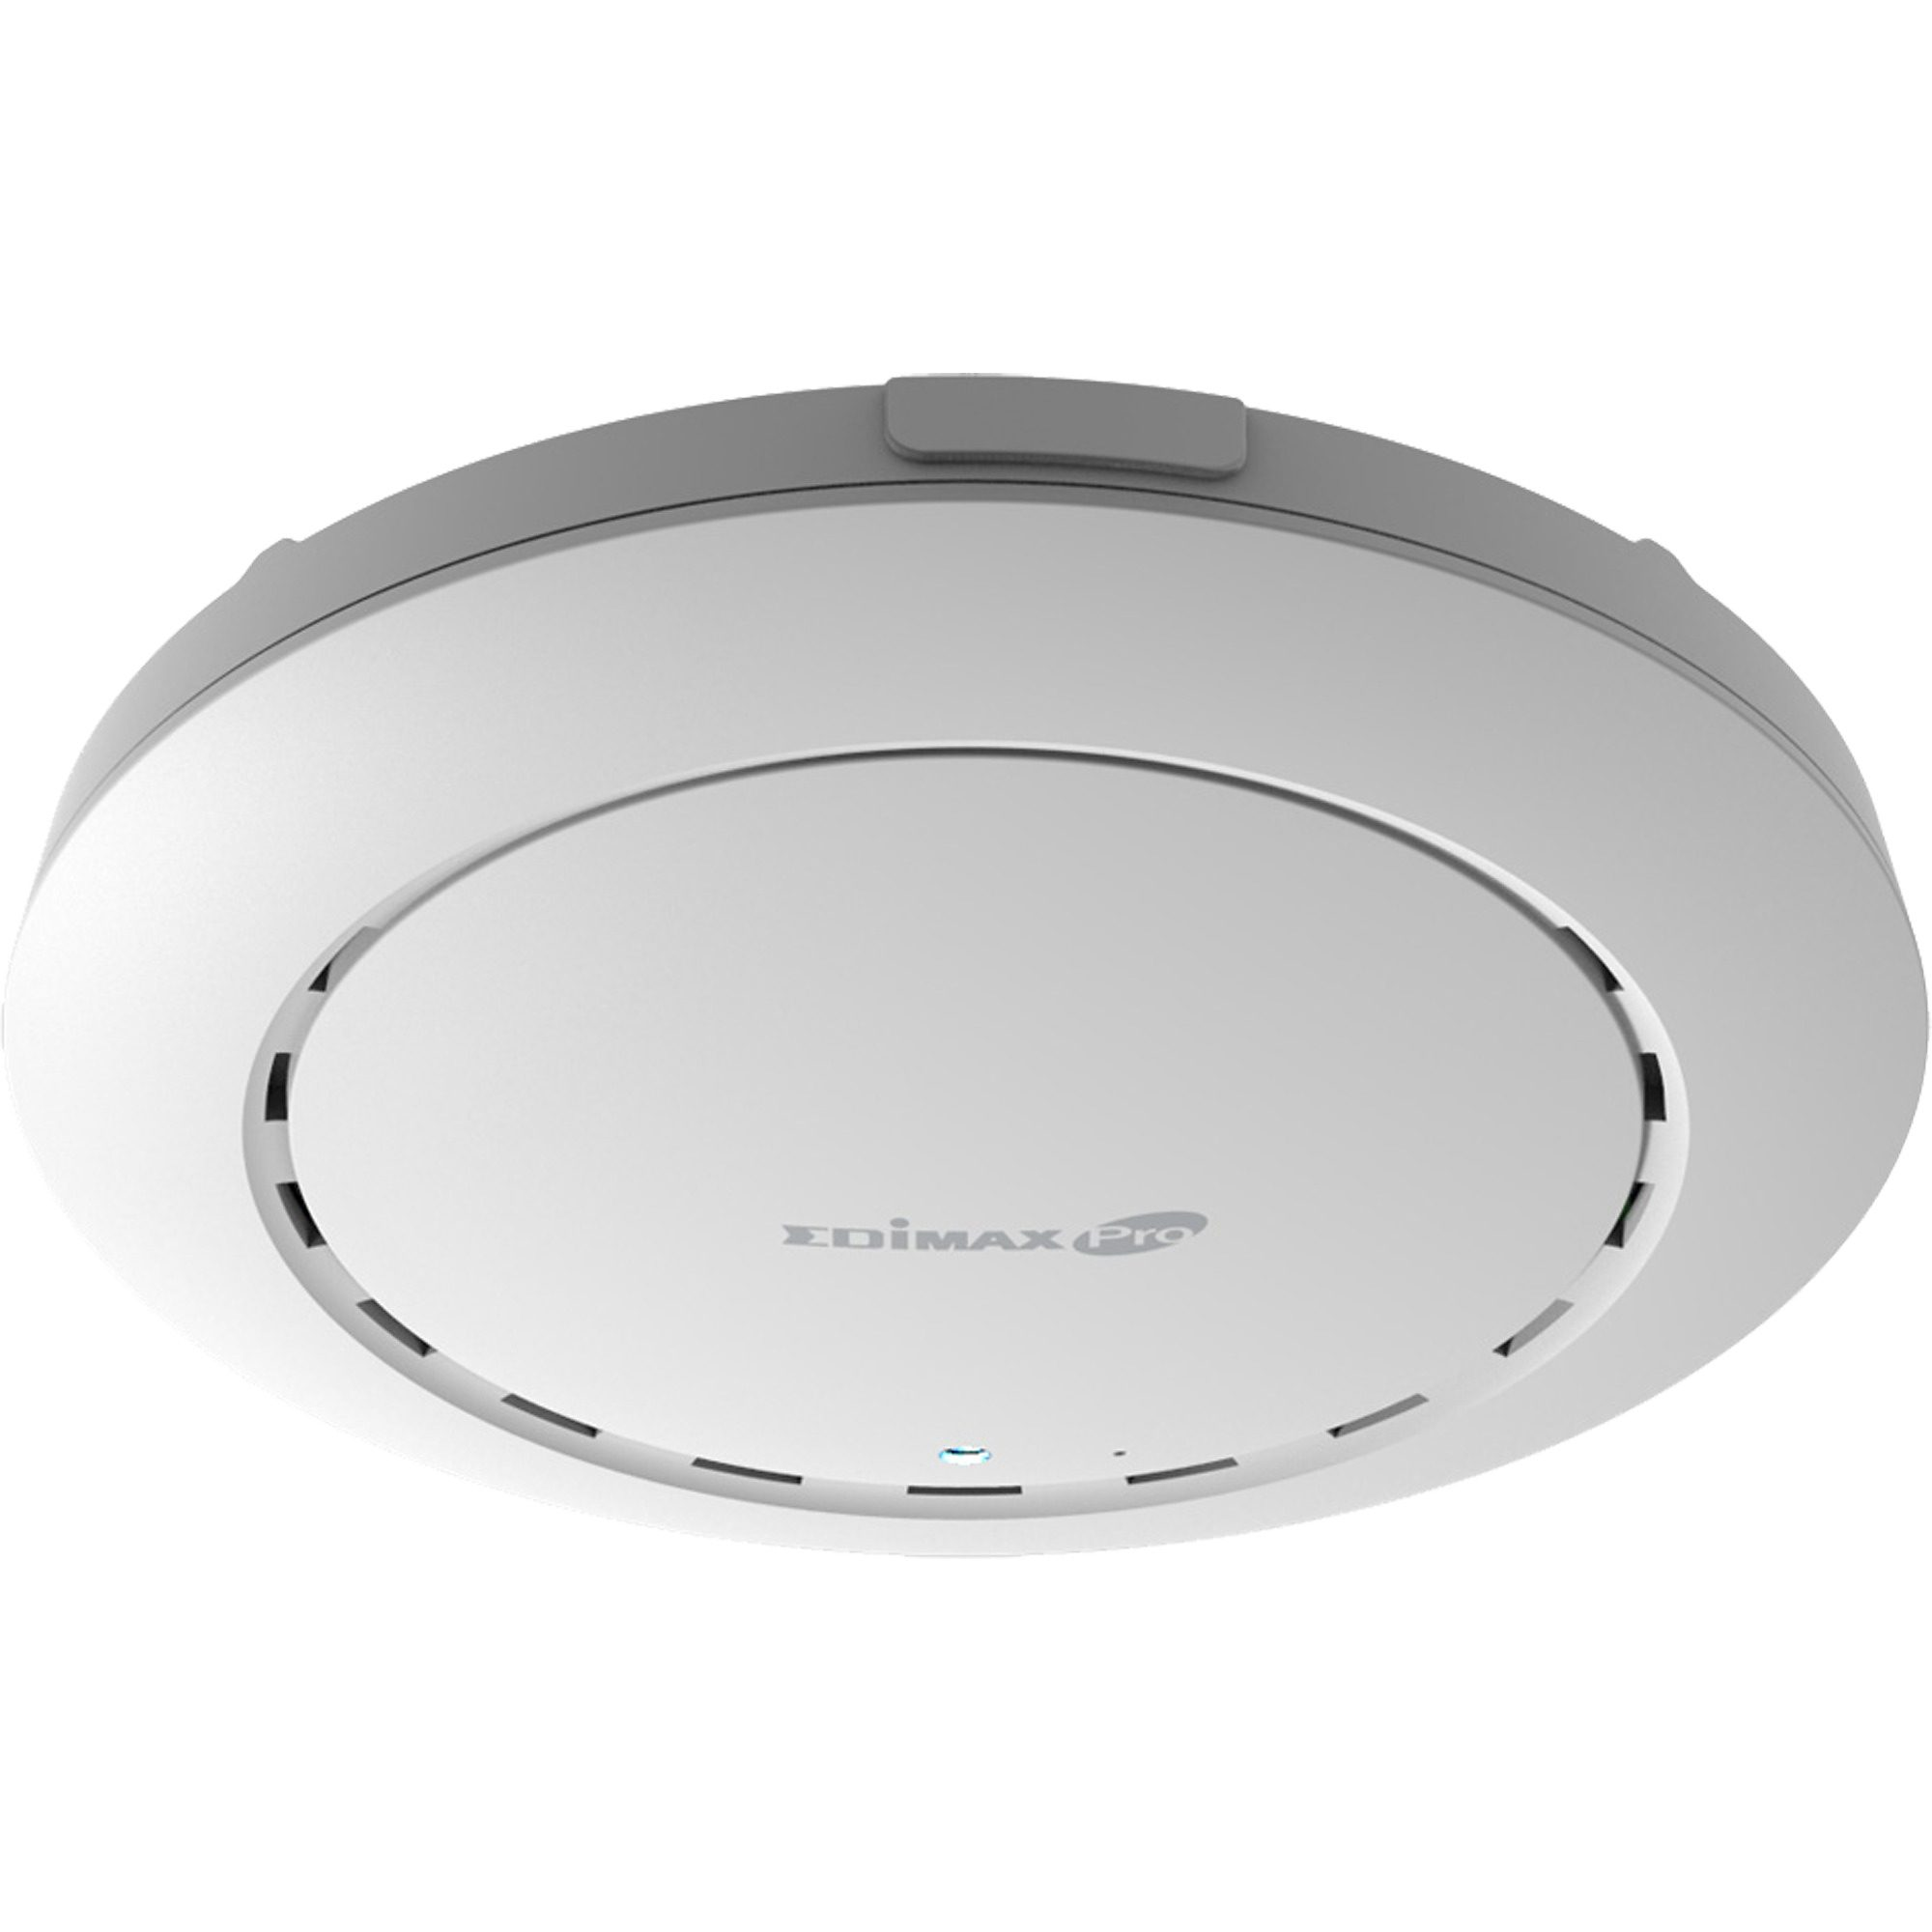 Edimax Access Point »Prof. Series CAP1200«